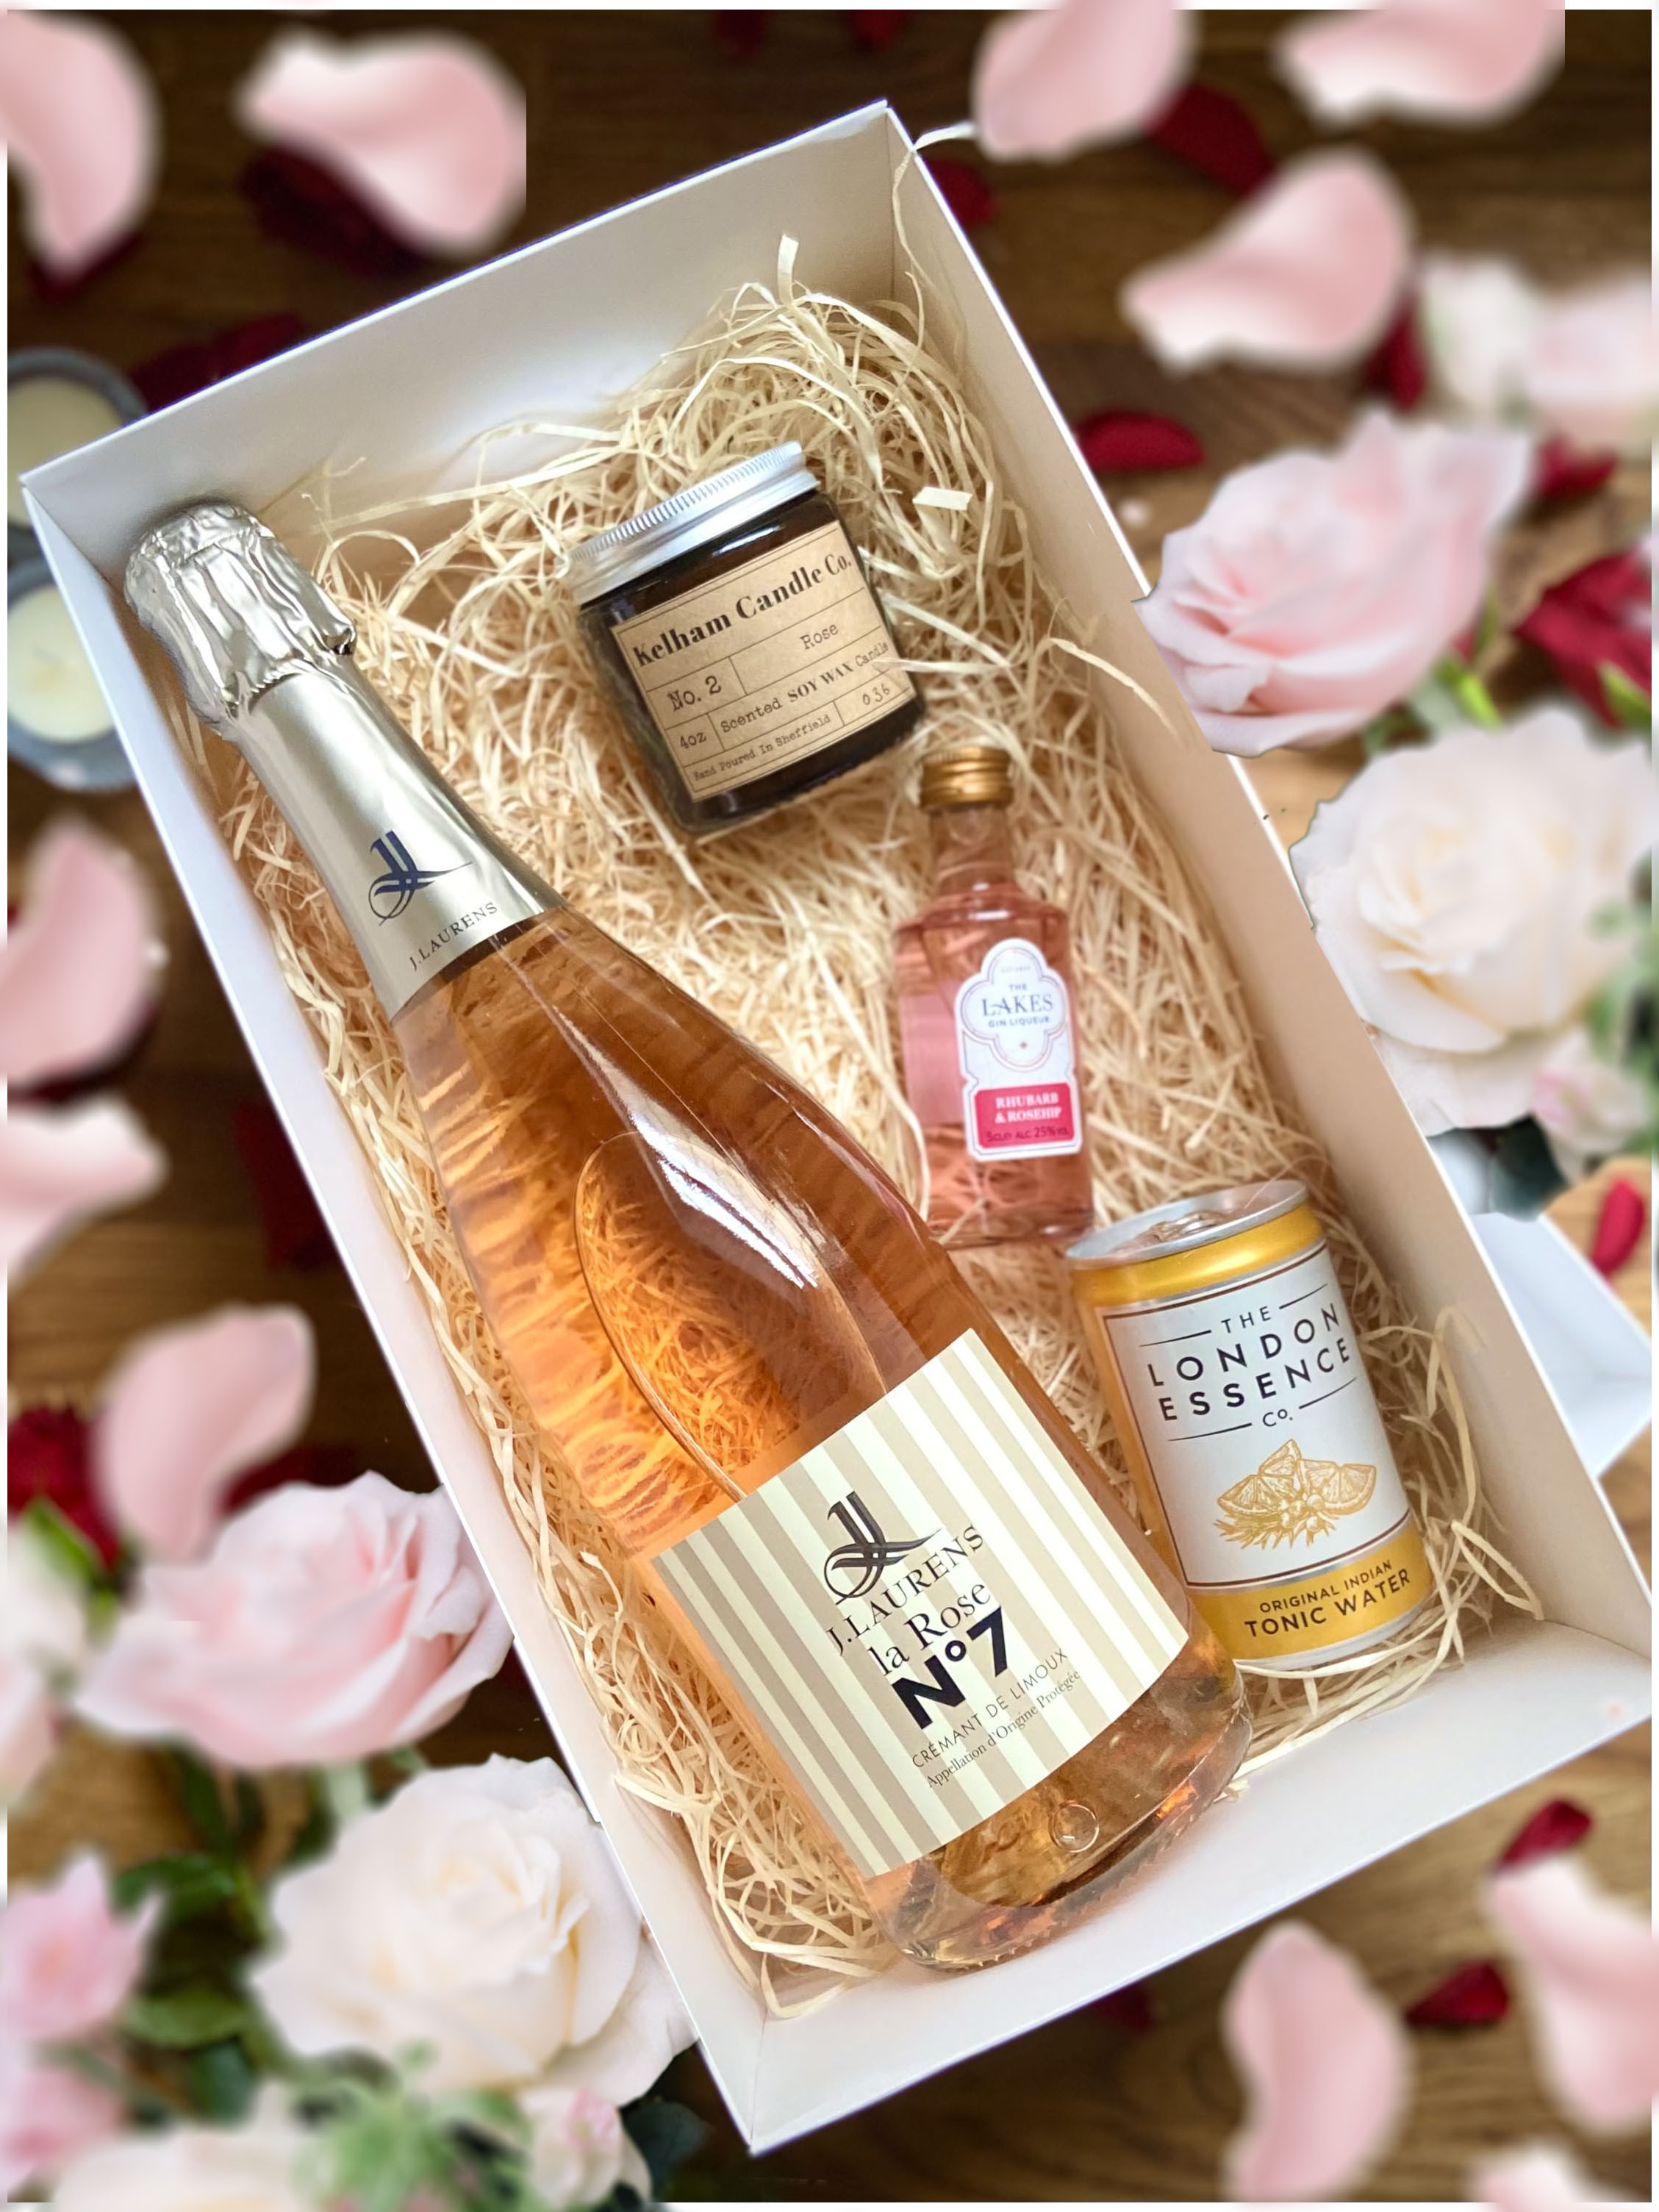 J.Laurens, Crémant Rose 75cl, 4oz Kelham Candle, Lakes Gin Rhubarb and Rosehip 5cl and London Essence Tonic can 150ml Set